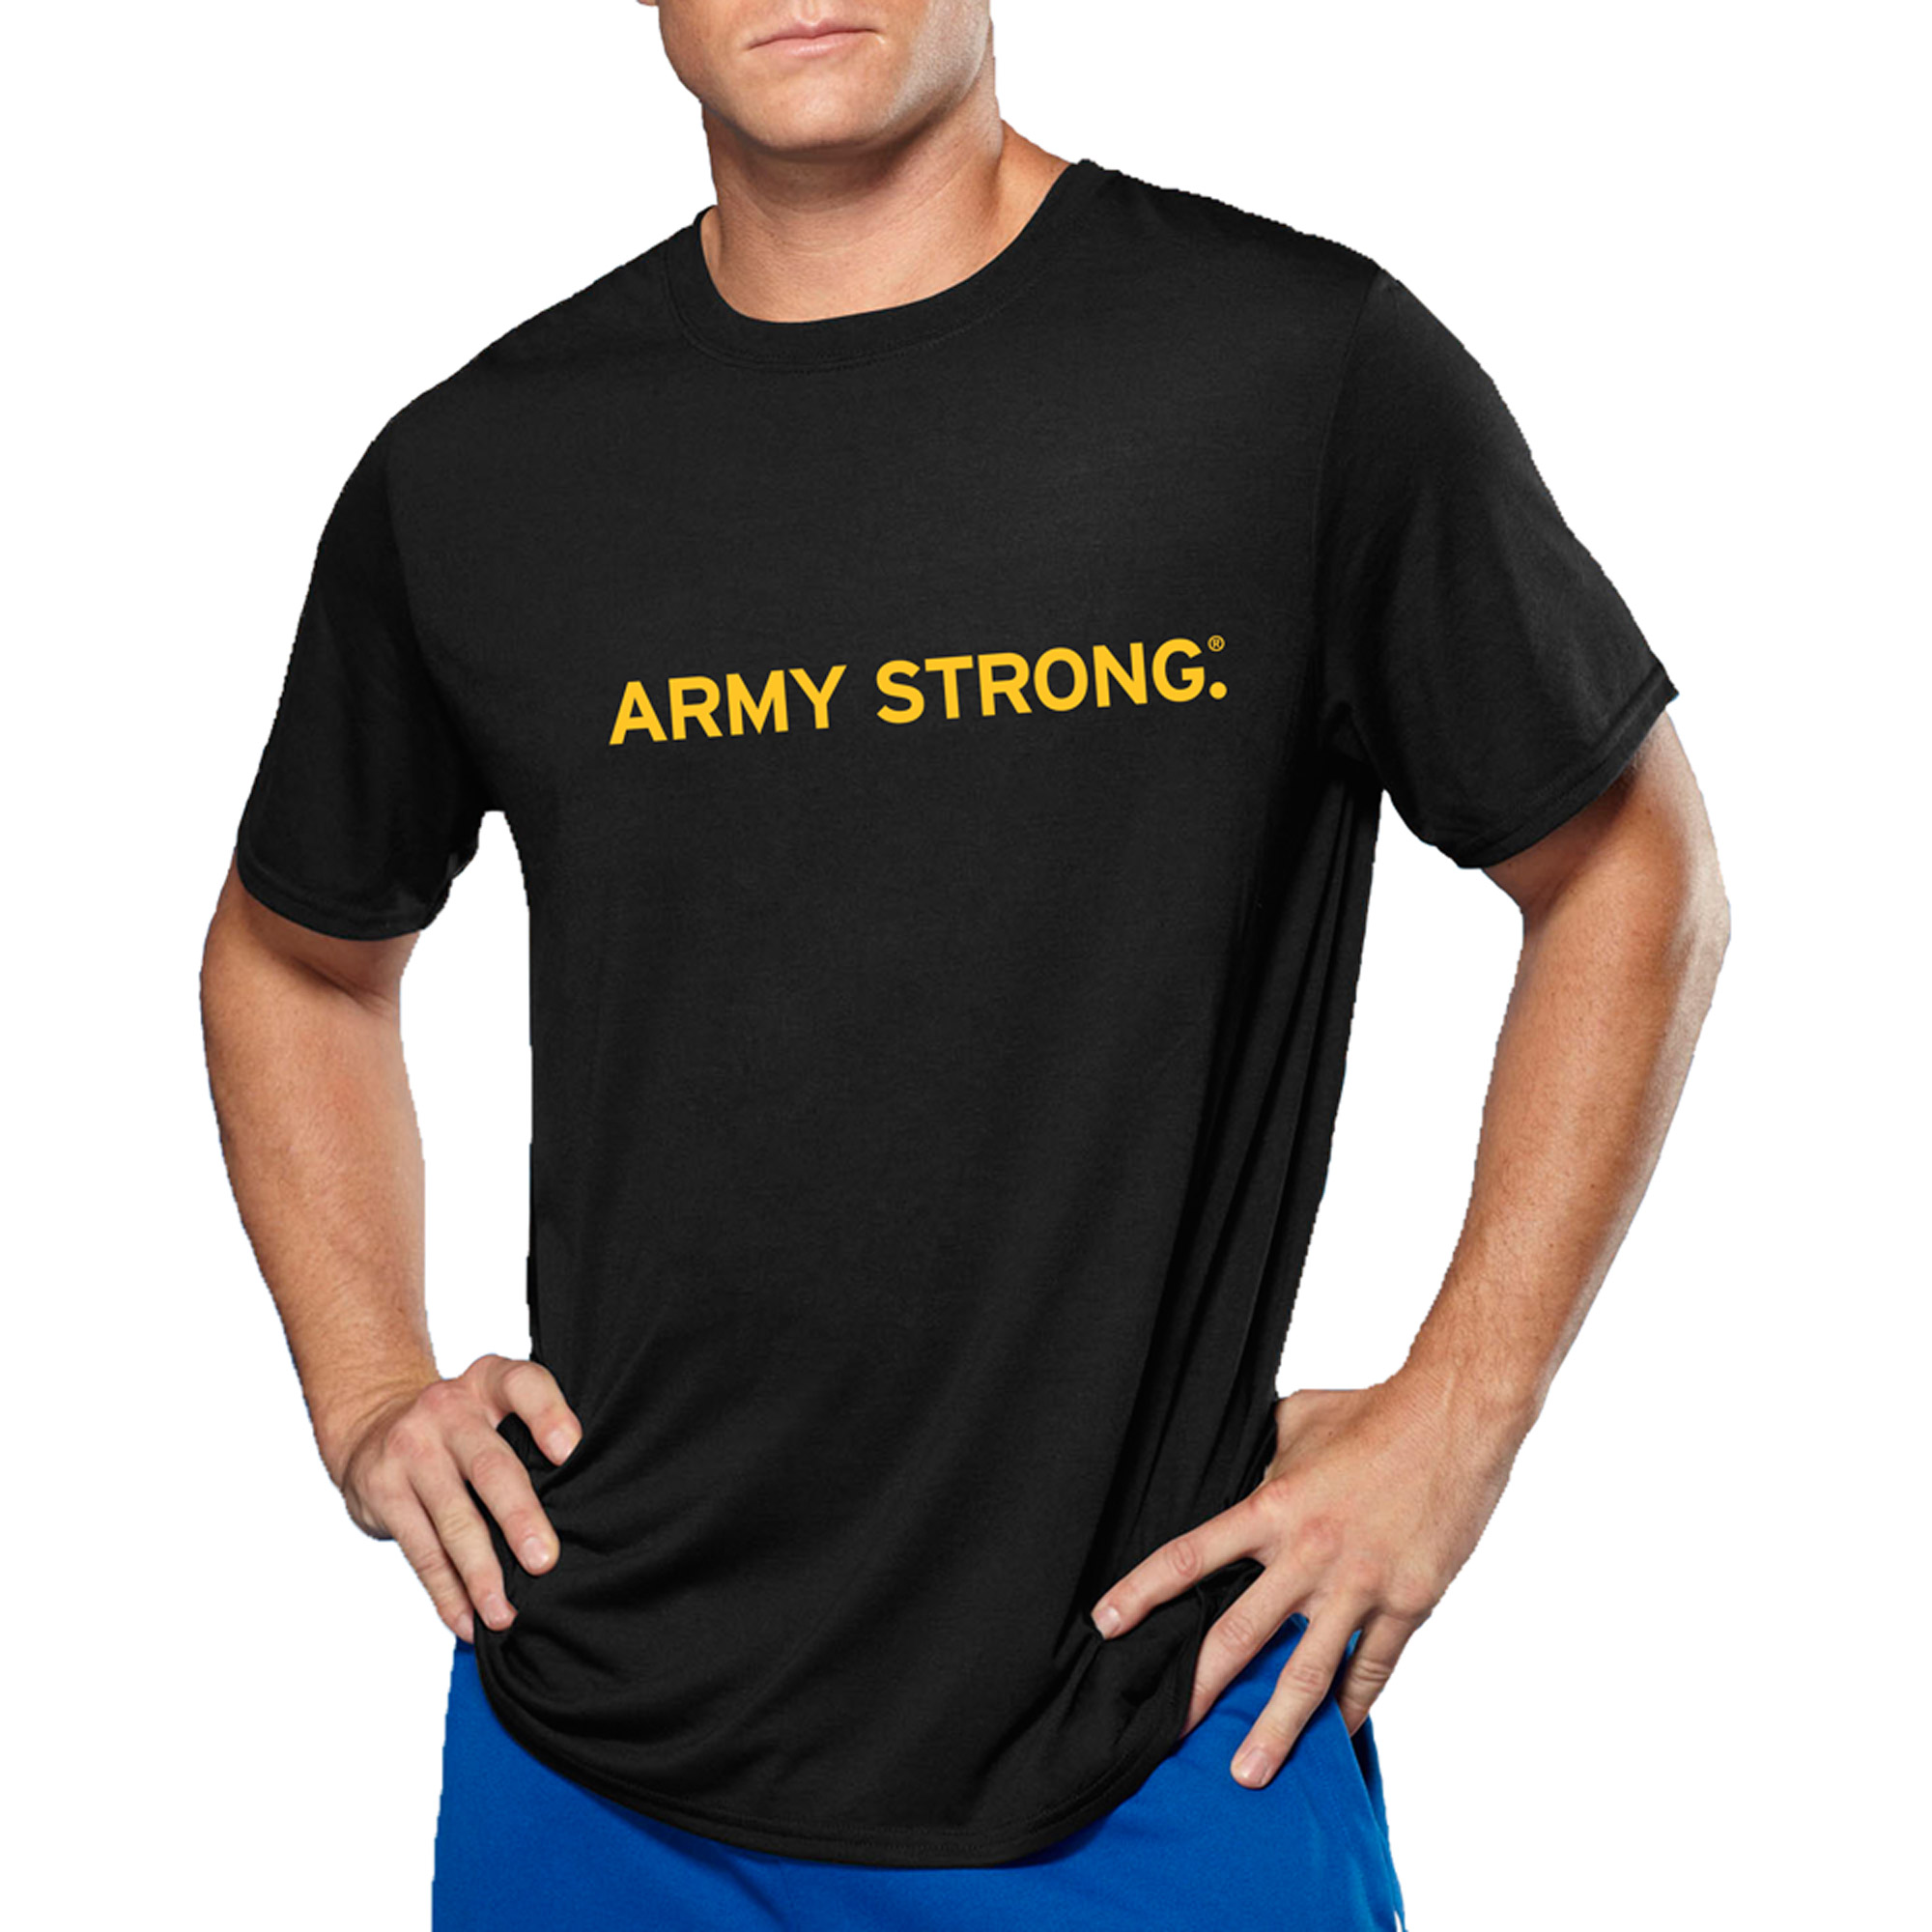 Big Men's Military Officially Licensed Army Strong Performance Comfort Wear Graphic Tee, 2XL